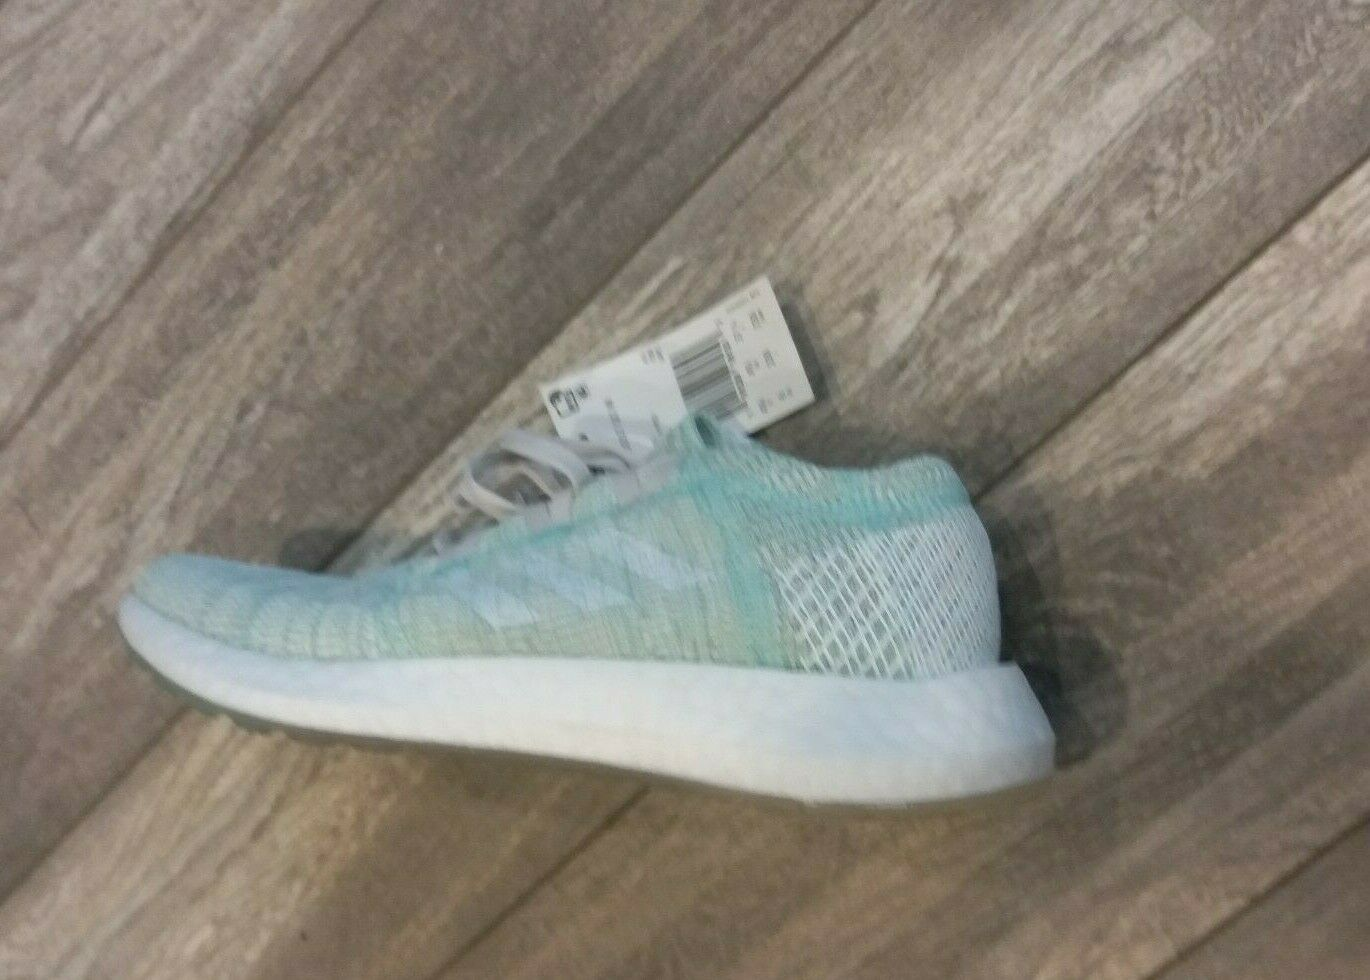 Primary image for NEW Adidas Pureboost Go Women's Running Shoes Clear B75827 Size 6